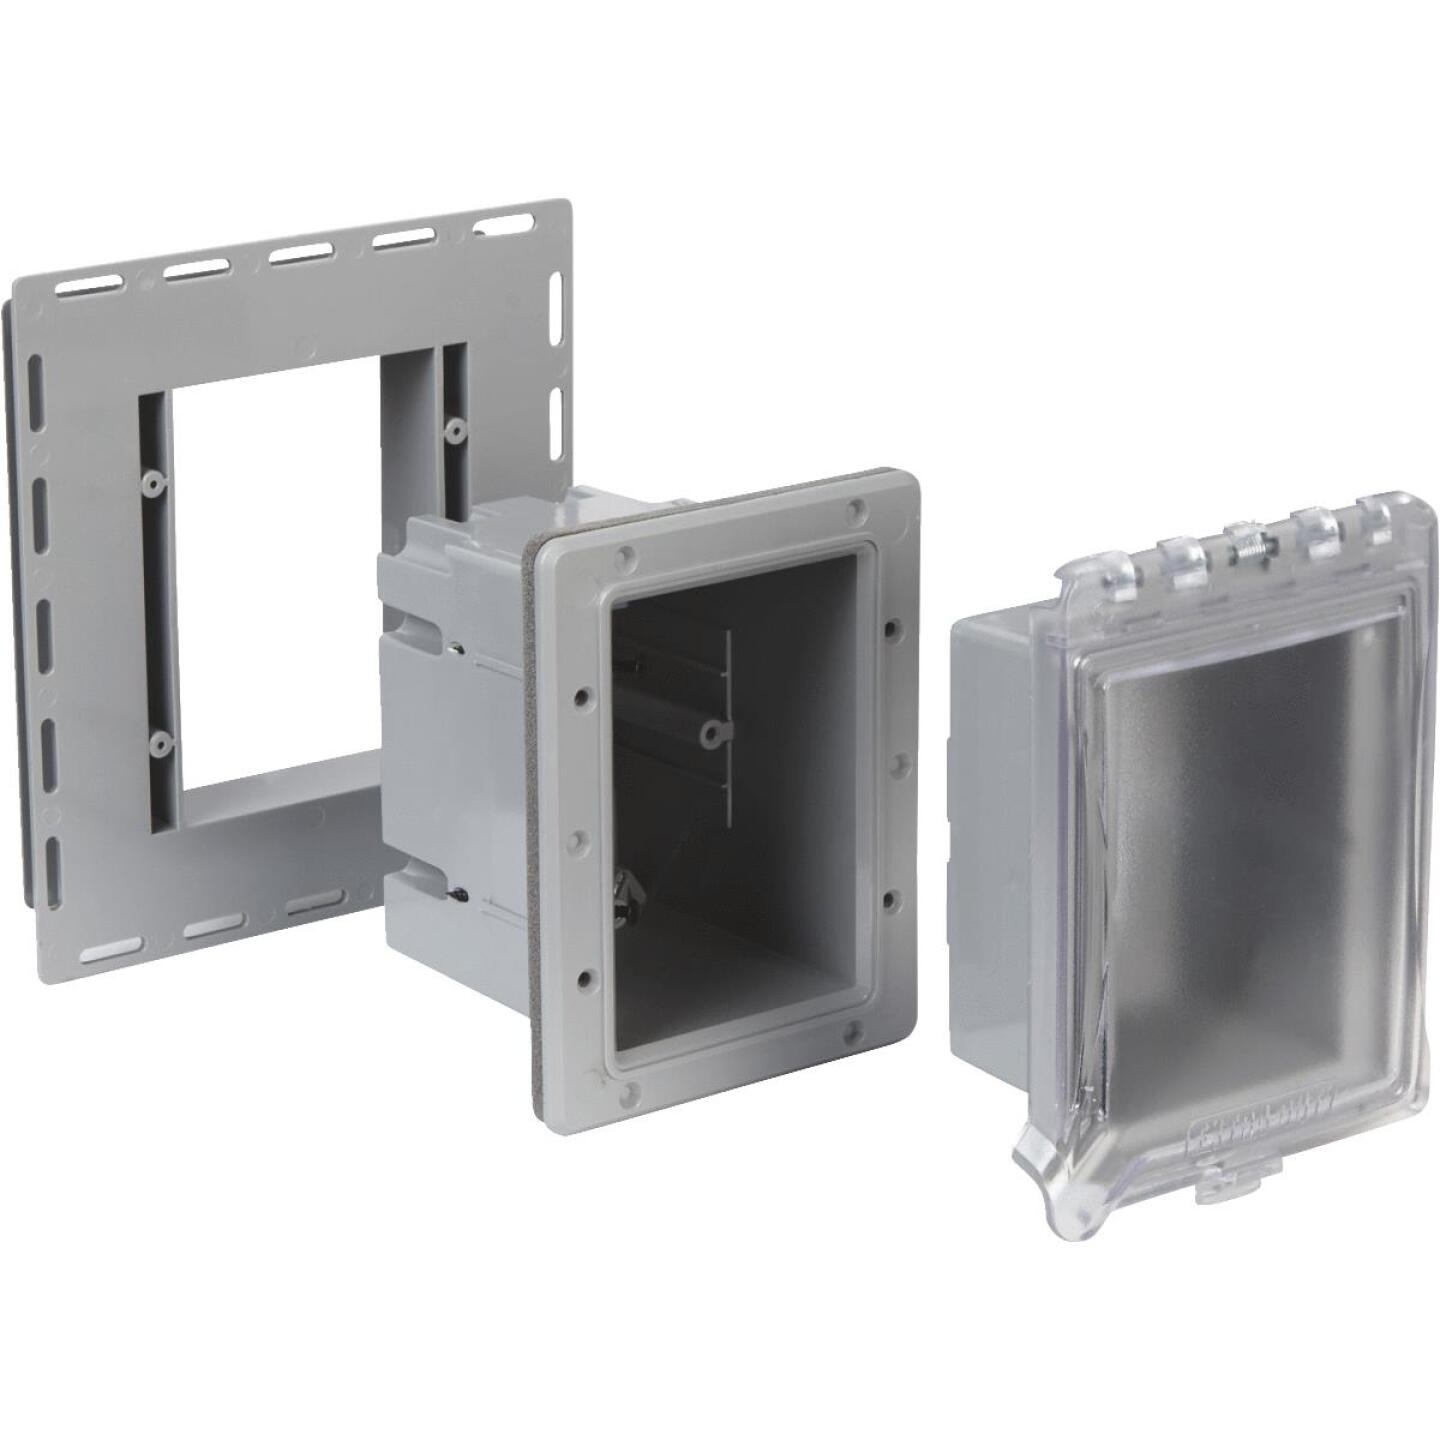 TayMac Gray Vertical/Horizontal Non-Metallic Recessed Outdoor Outlet Kit Image 3